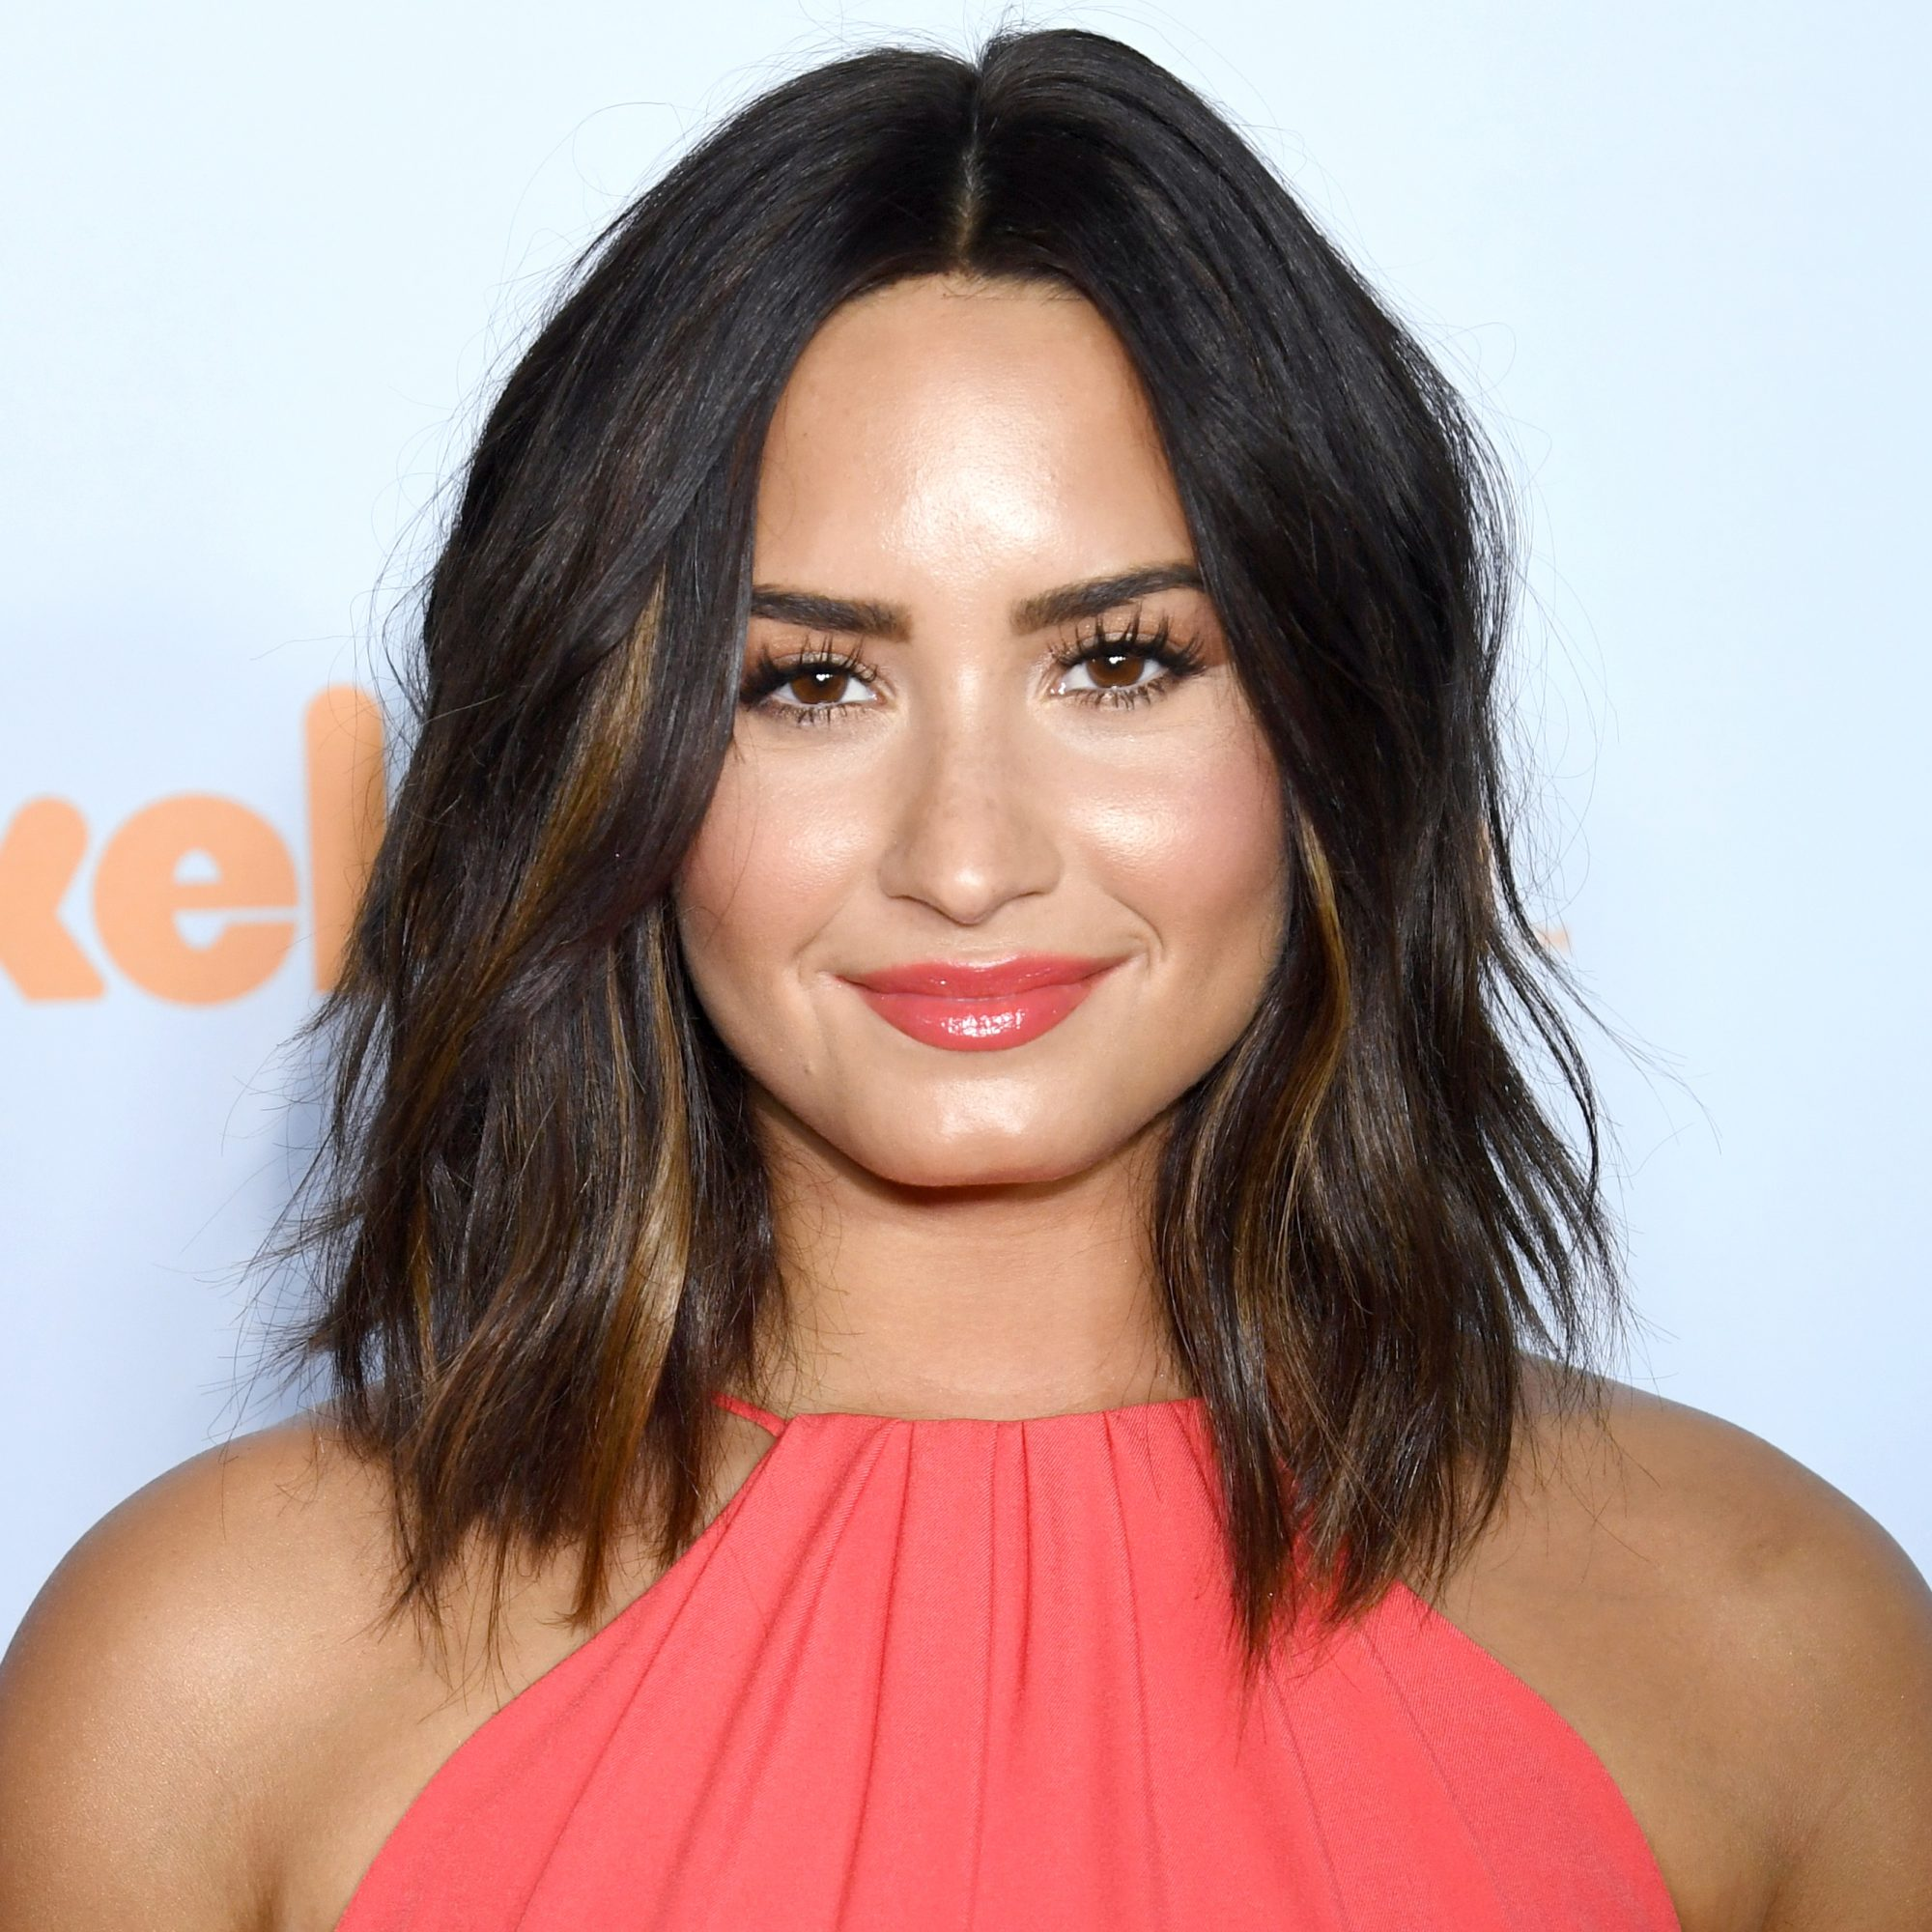 Celebrity Hairstyles: Demi Lovato Hairstyles